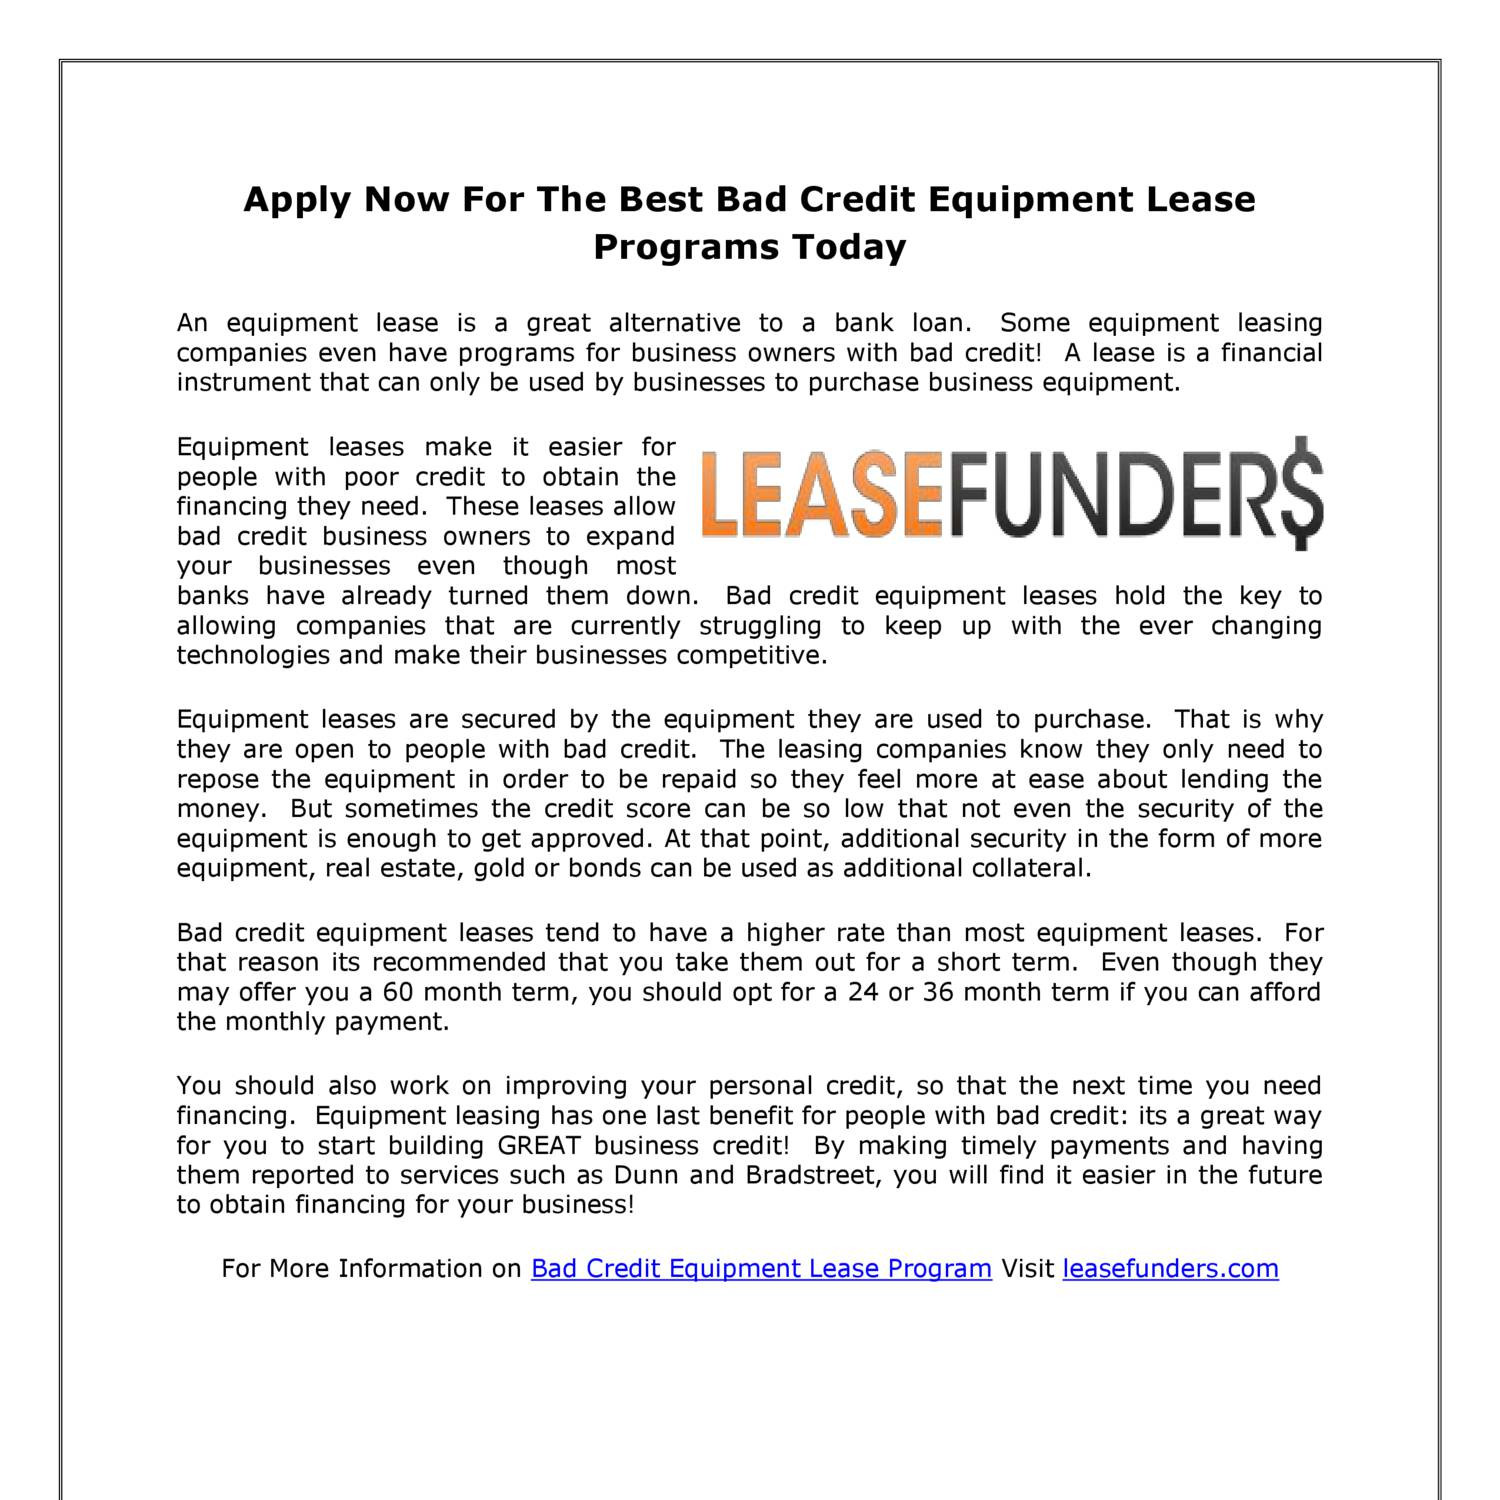 Lease With Bad Credit >> Apply Now For The Best Bad Credit Equipment Lease Programs